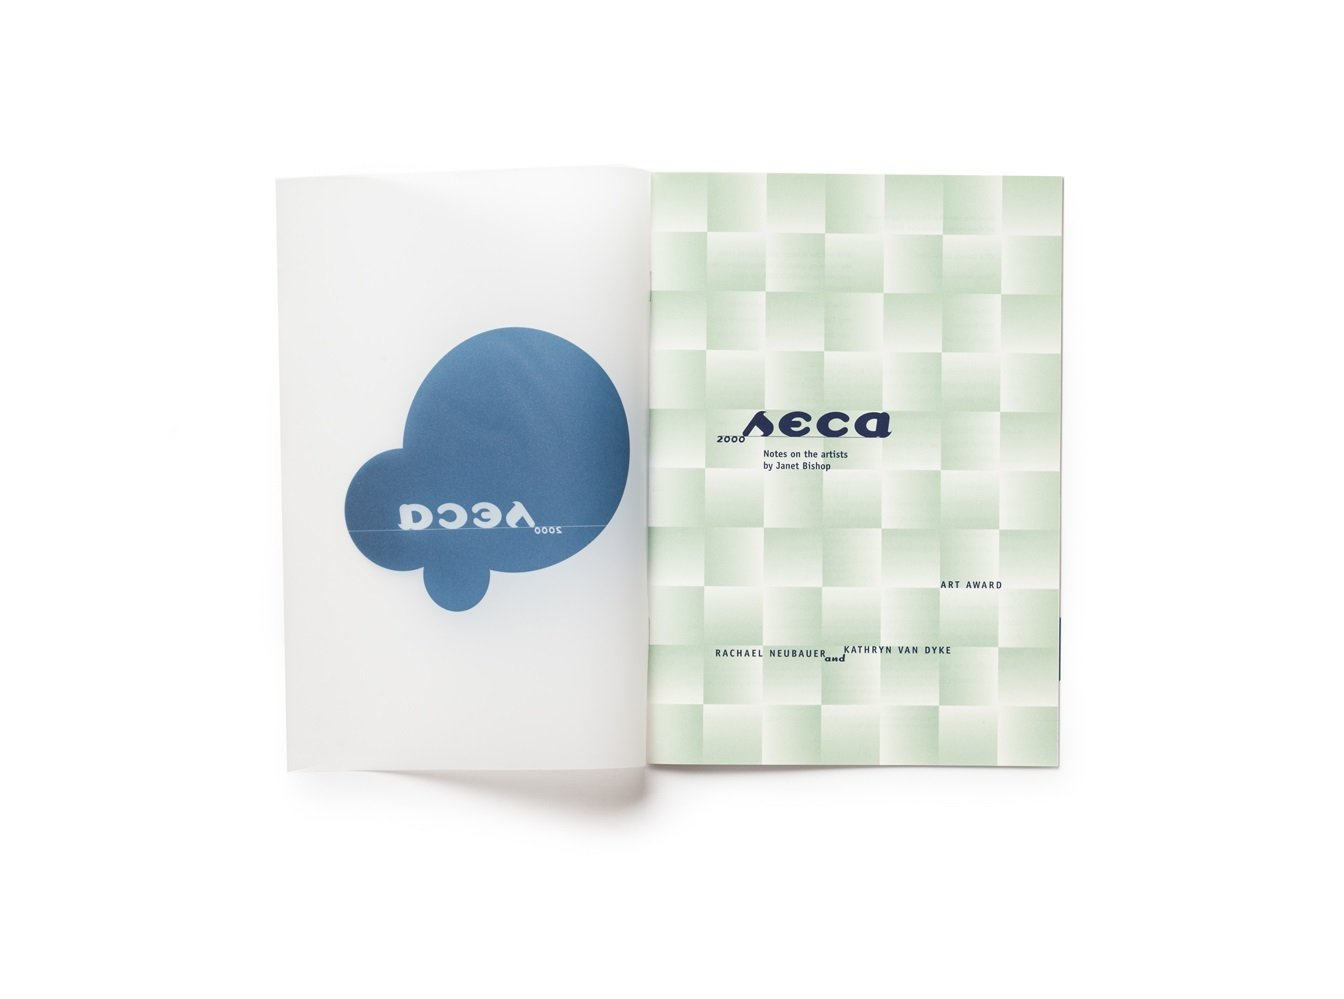 2000 SECA Art Award publication cover with outside flap open